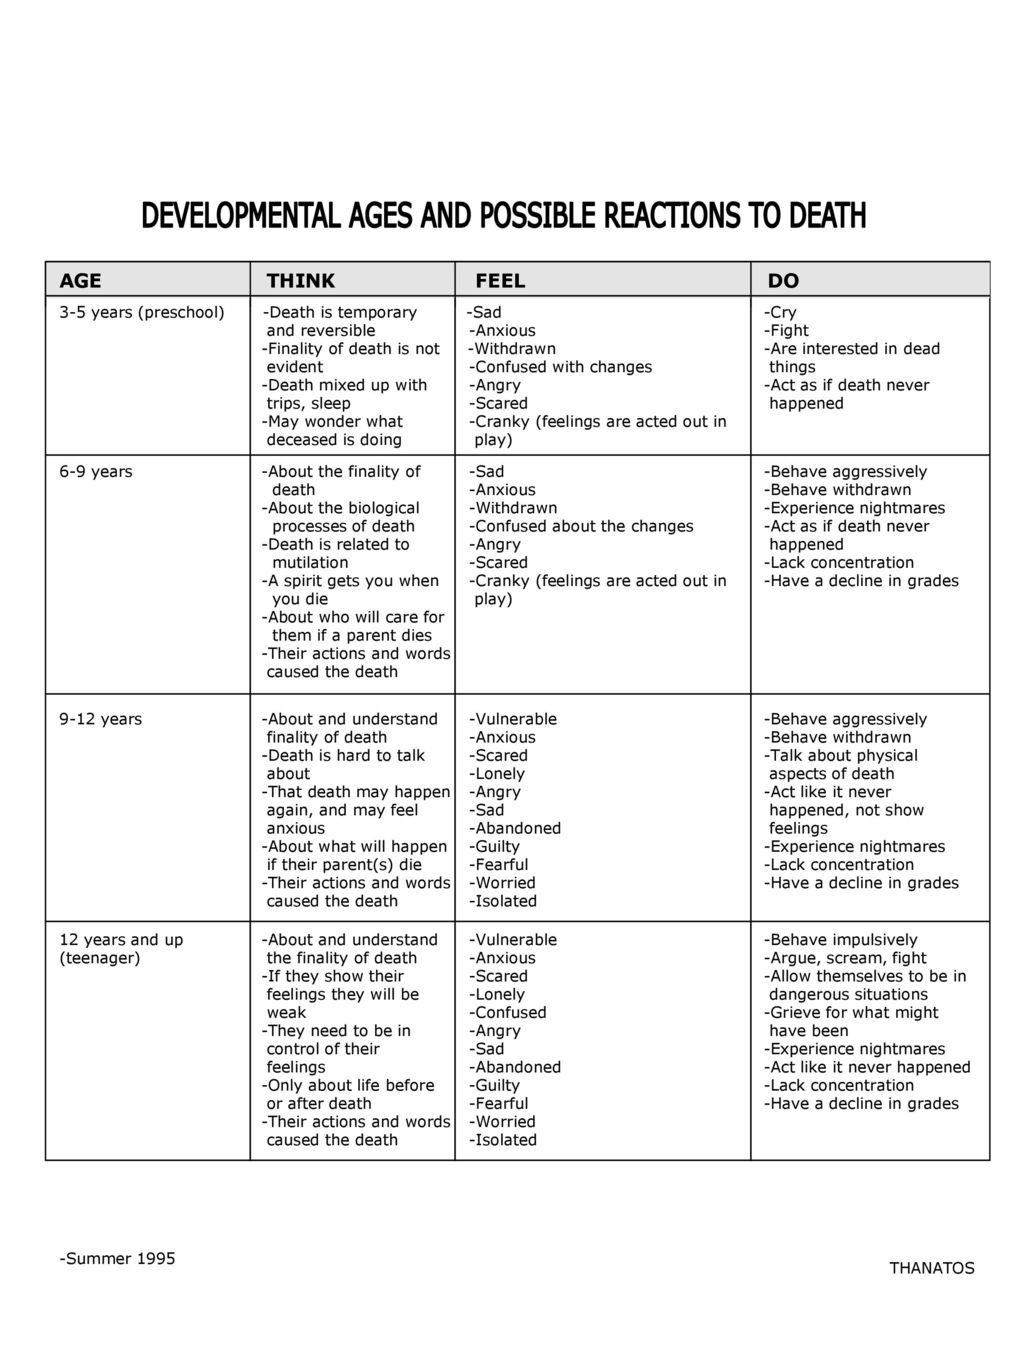 DEVELOPMENTAL AGES AND POSSIBLE REACTIONS TO DEATH - ppt download